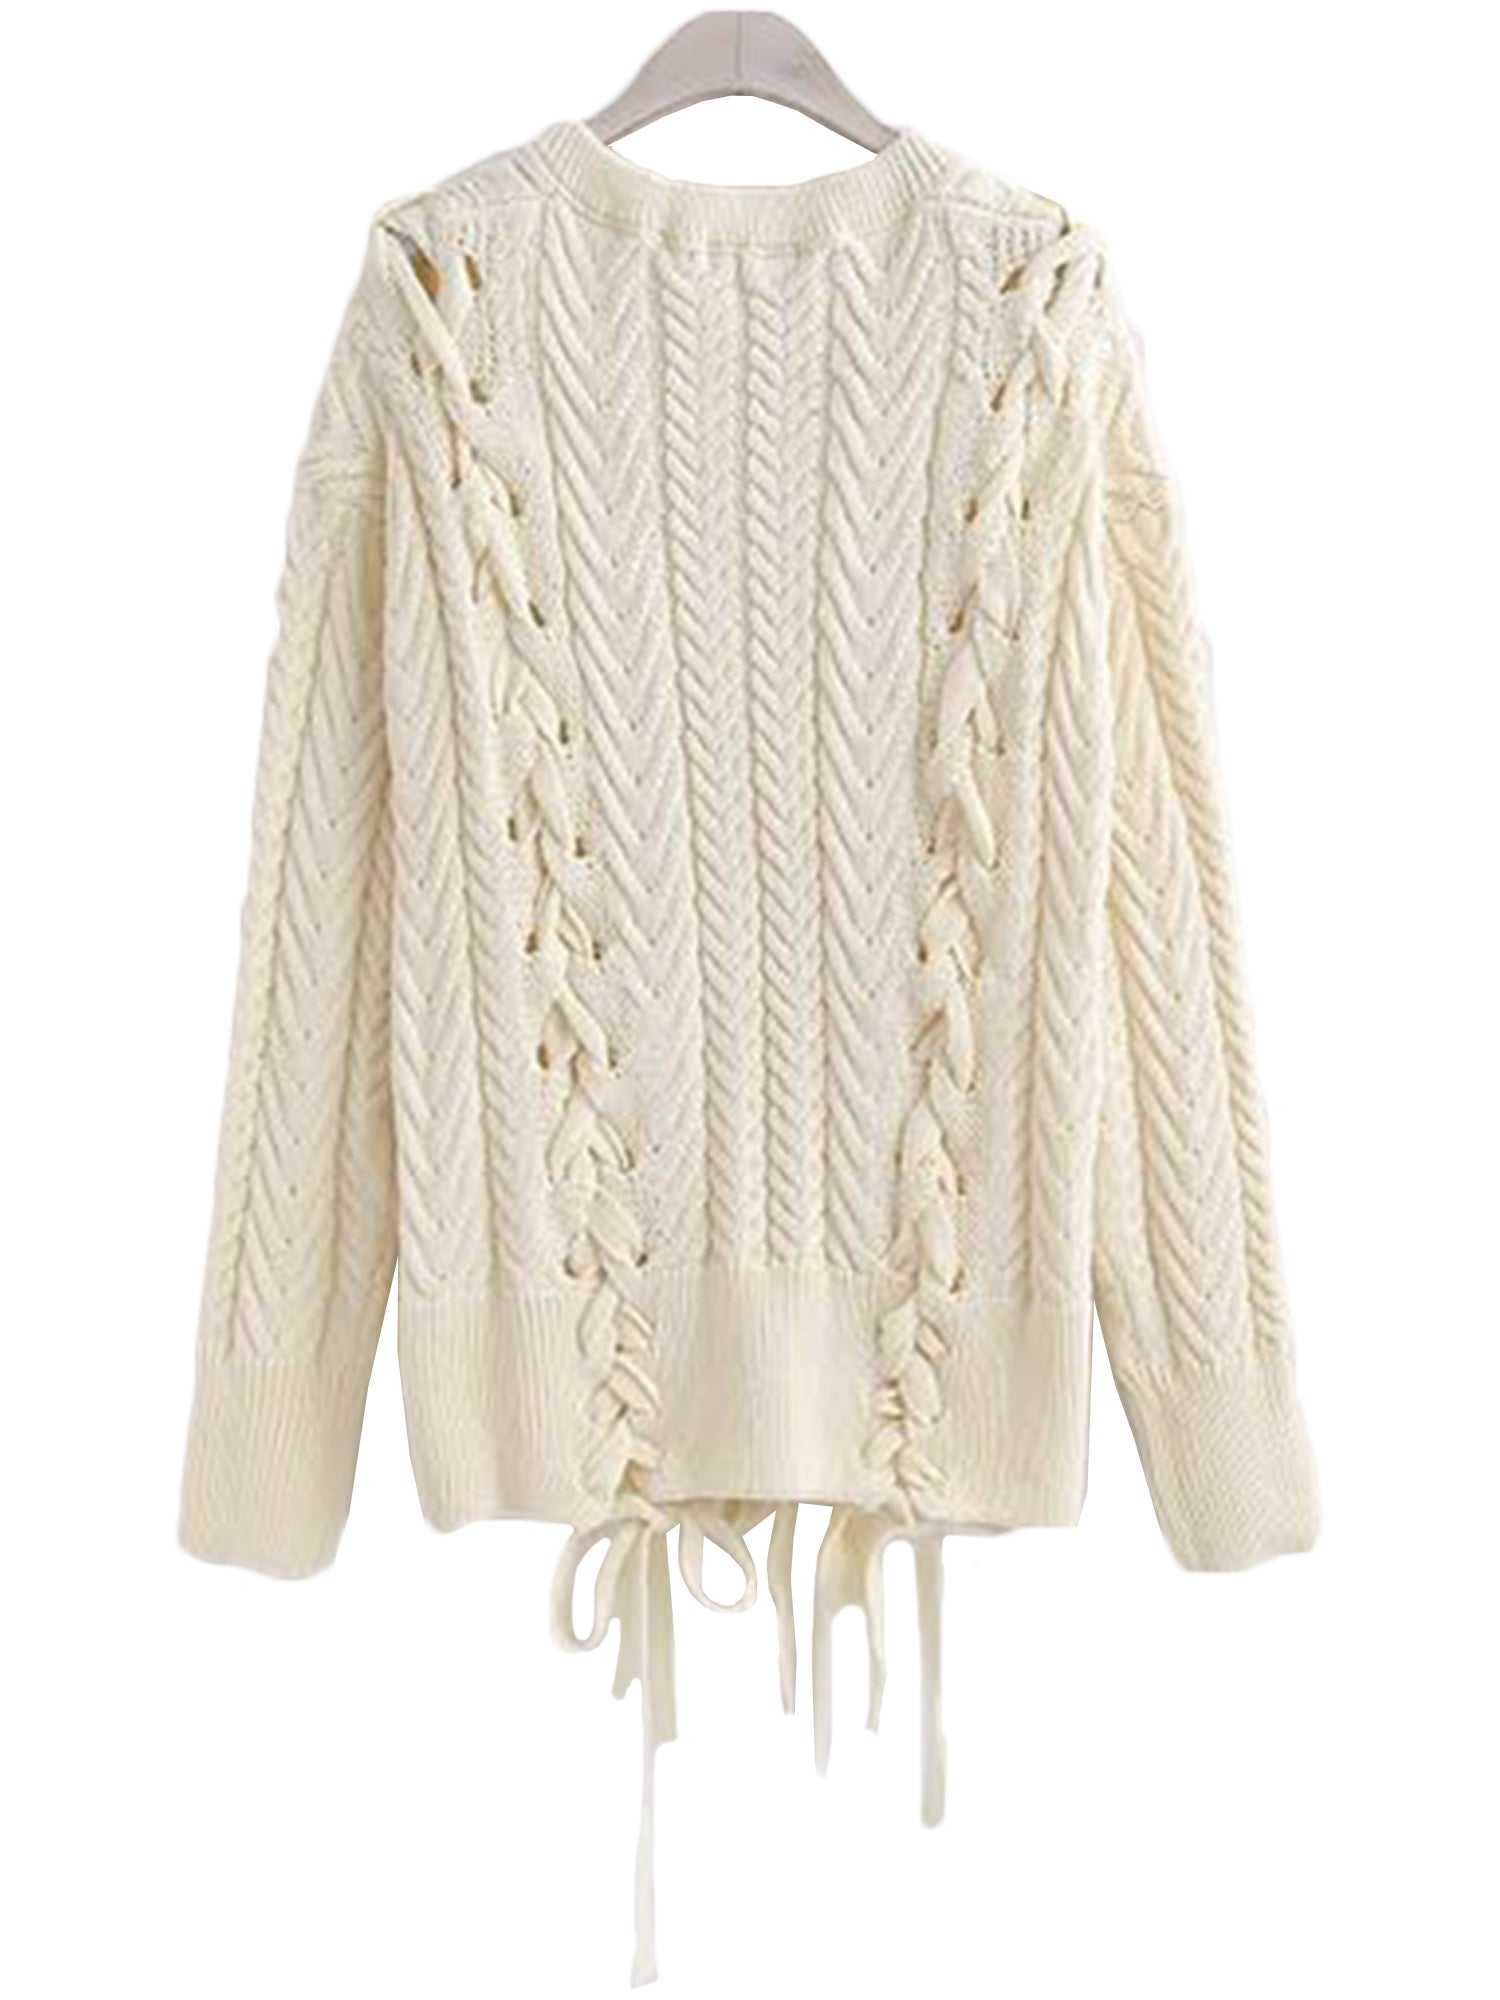 'Lani' V-neck Criss Cross Tied Sweater